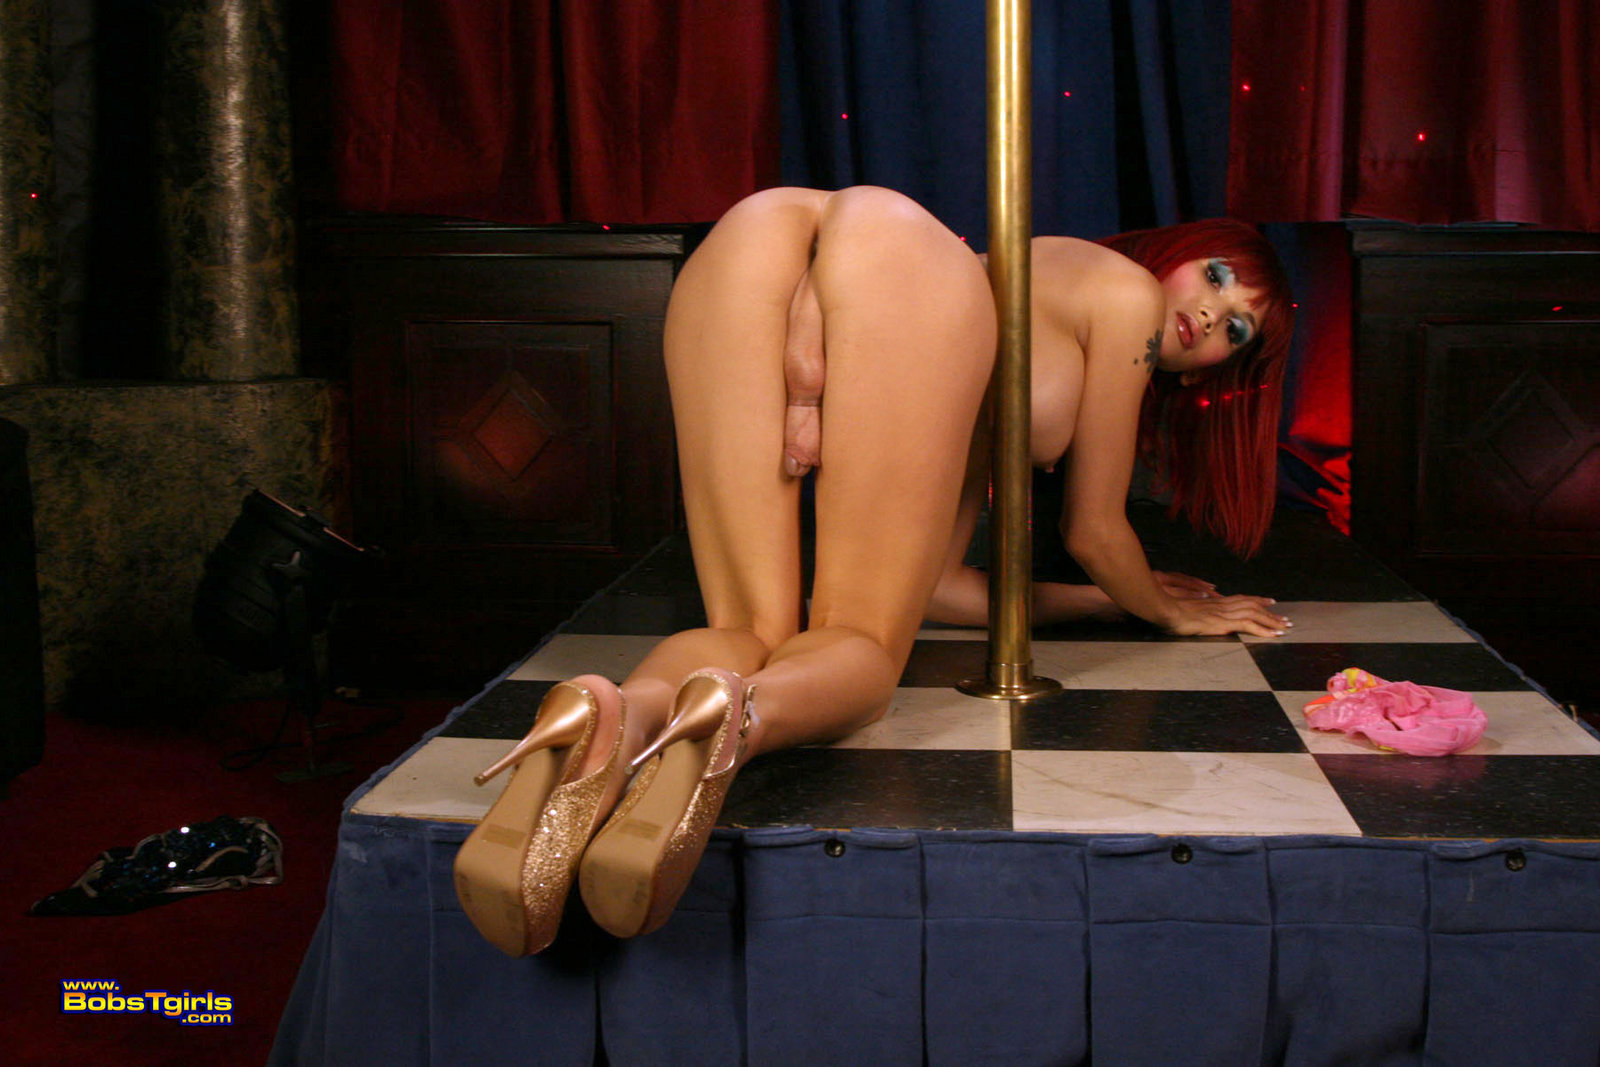 Nude exotic dancing video